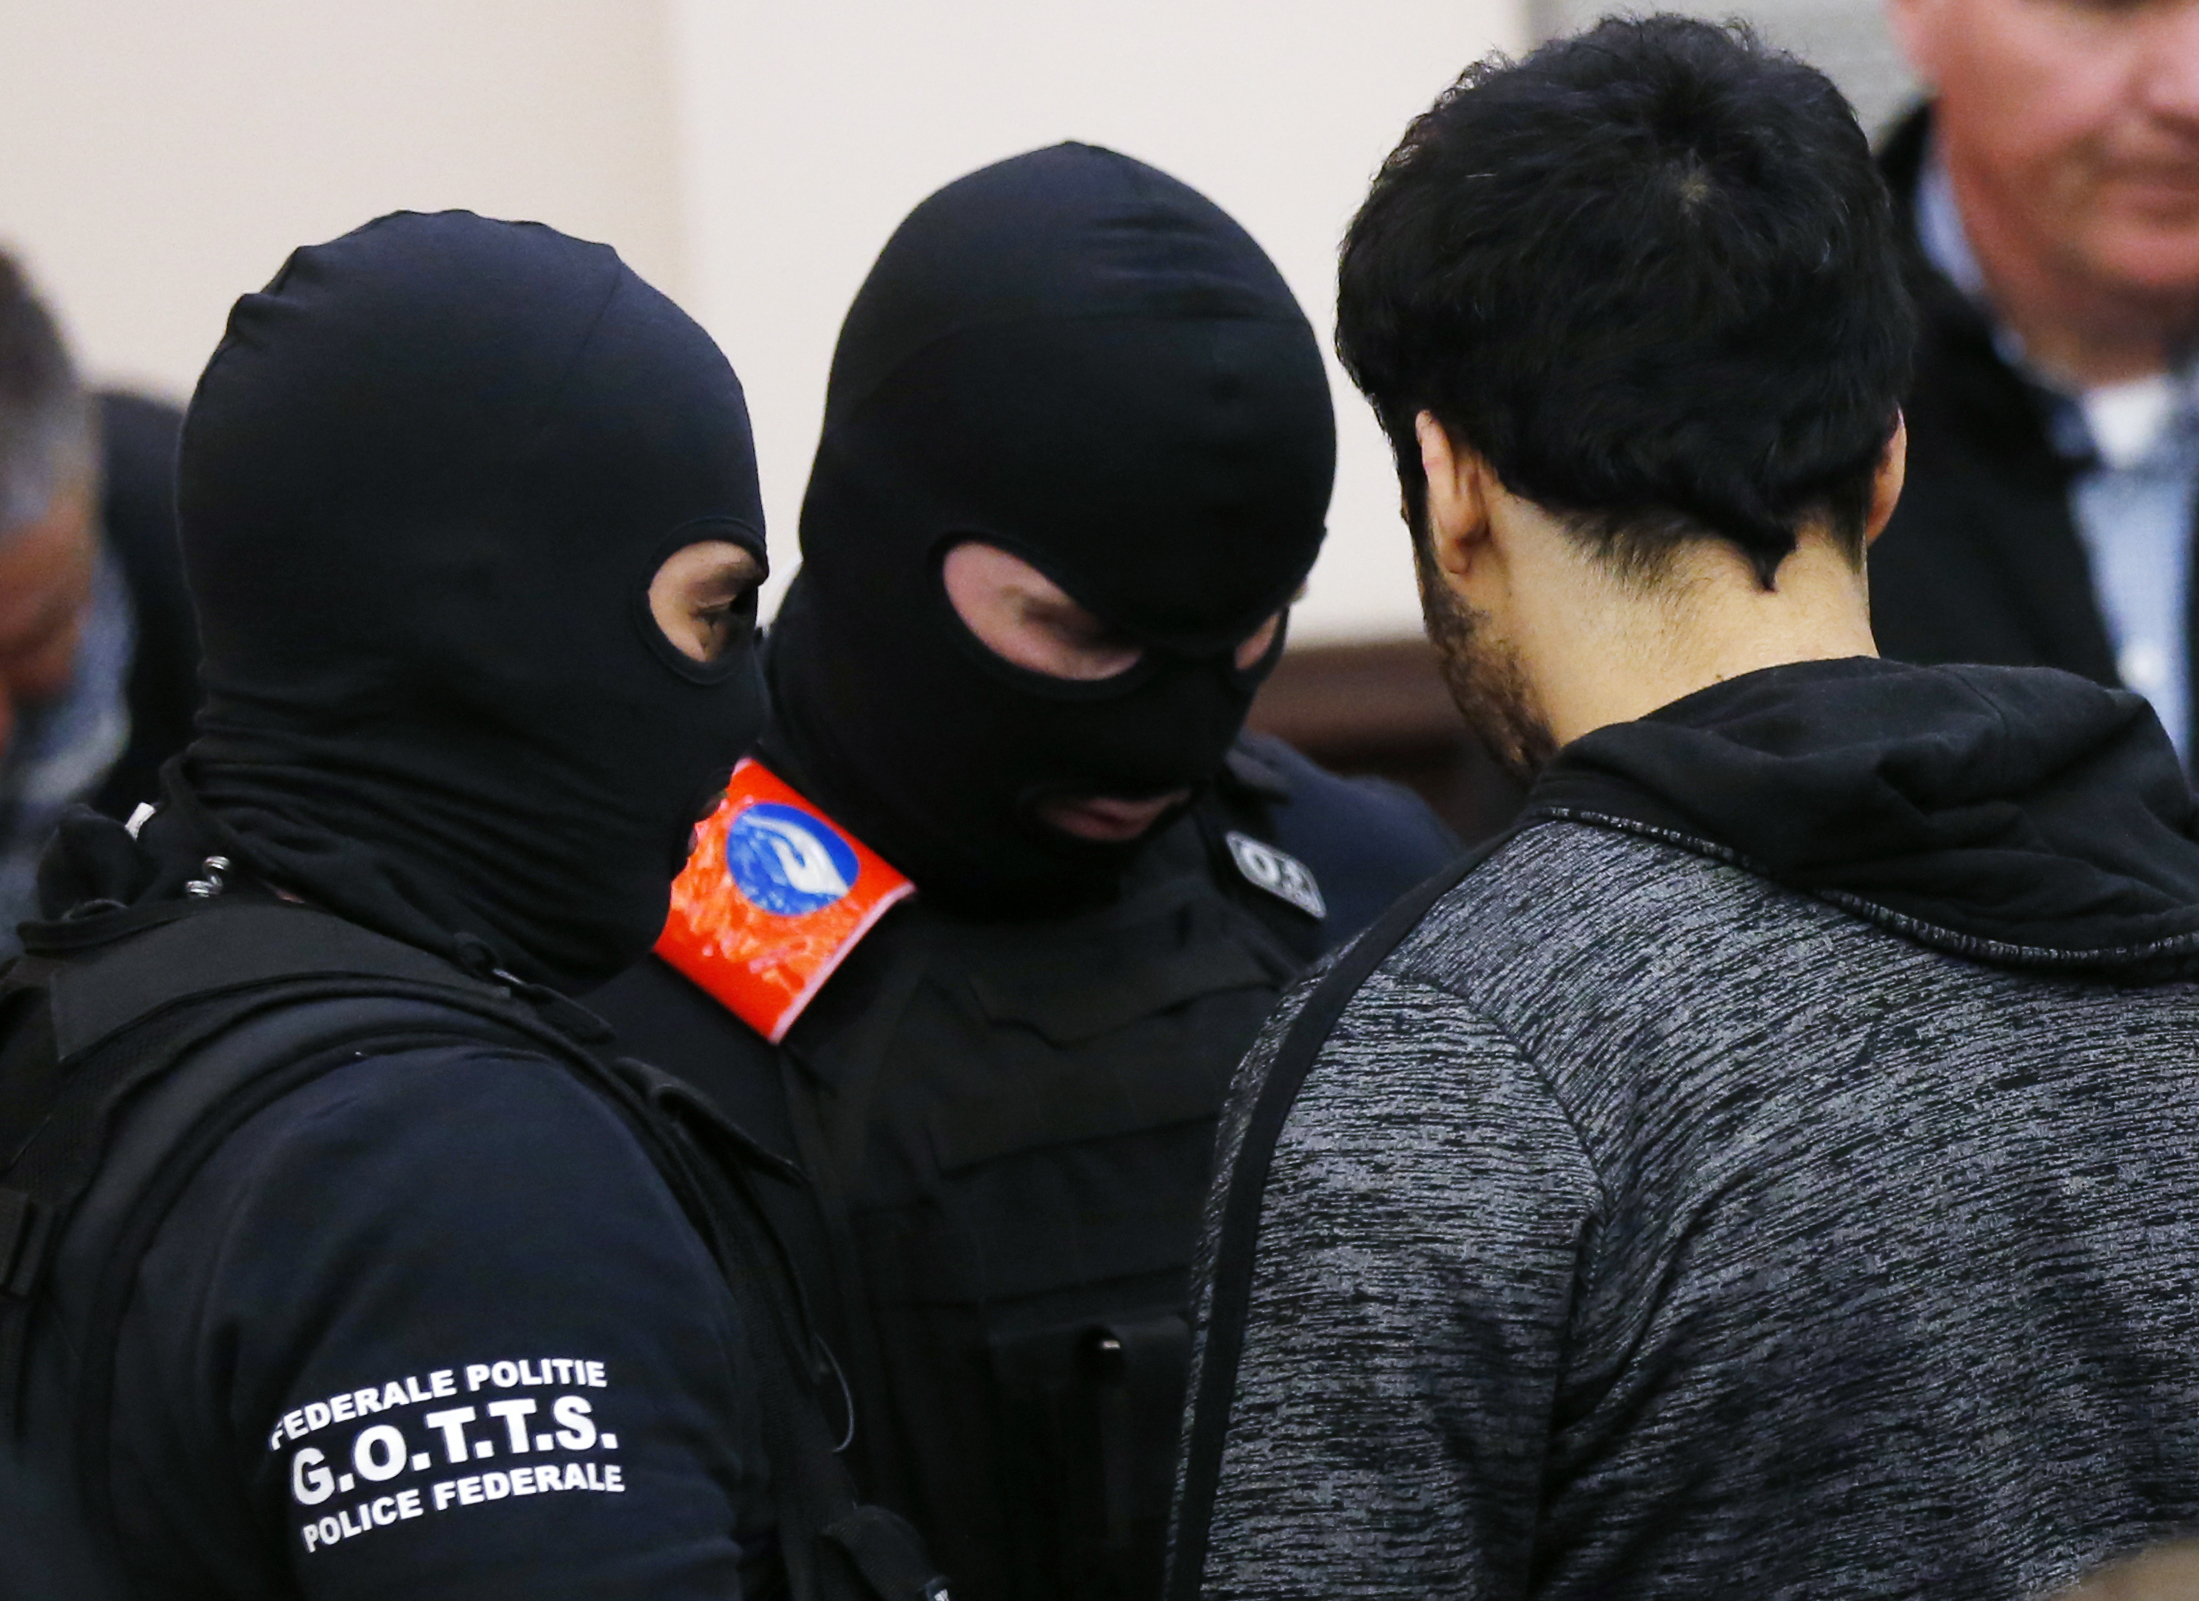 Soufiane Ayari, right, is surrounded by Belgian special police officers during the second day of the trial (Francois Lenoir, Pool Photo via AP)